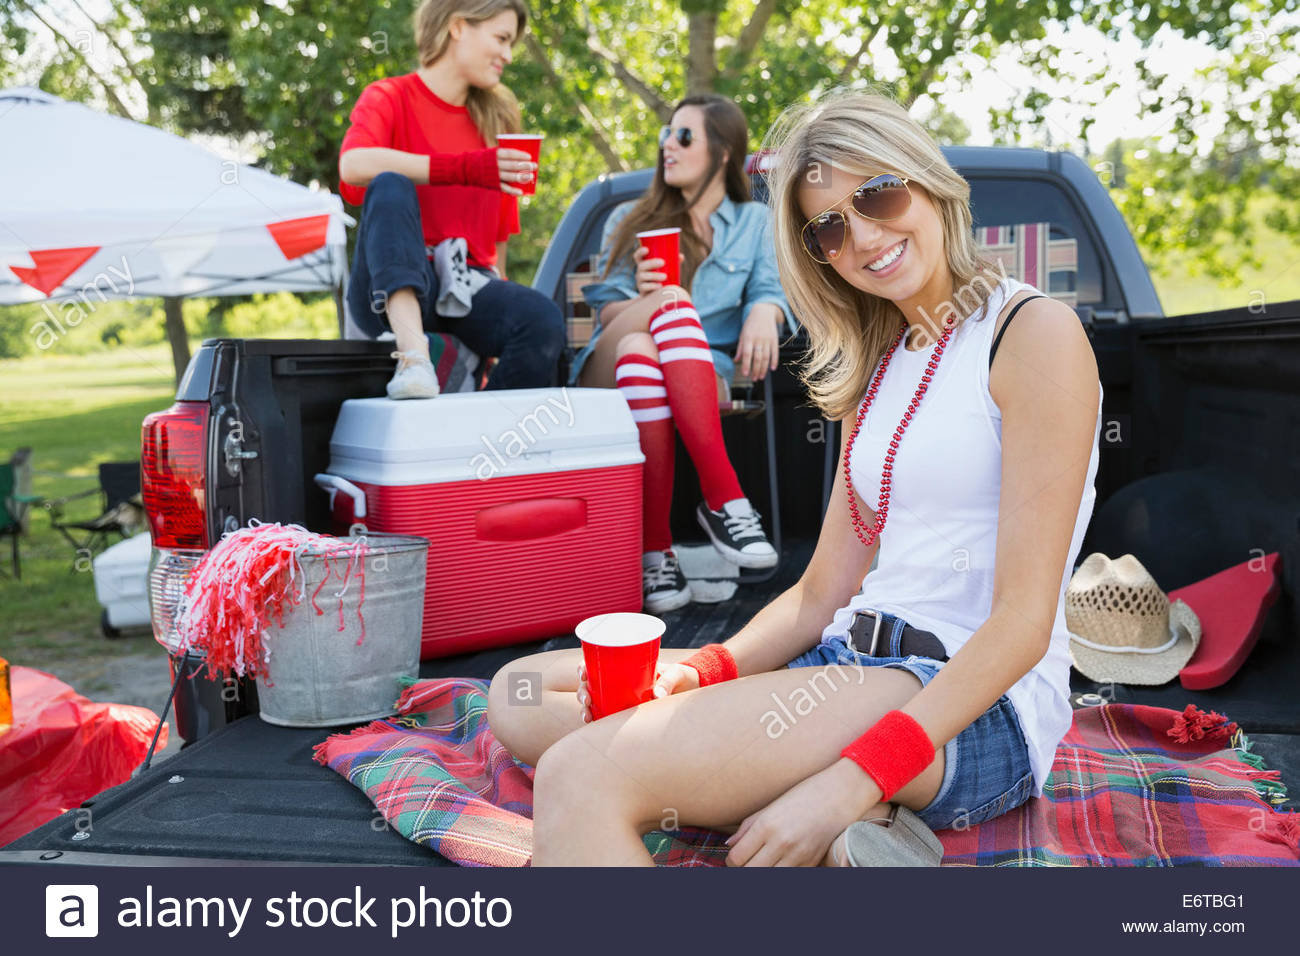 Woman relaxing at tailgate barbecue in field - Stock Image